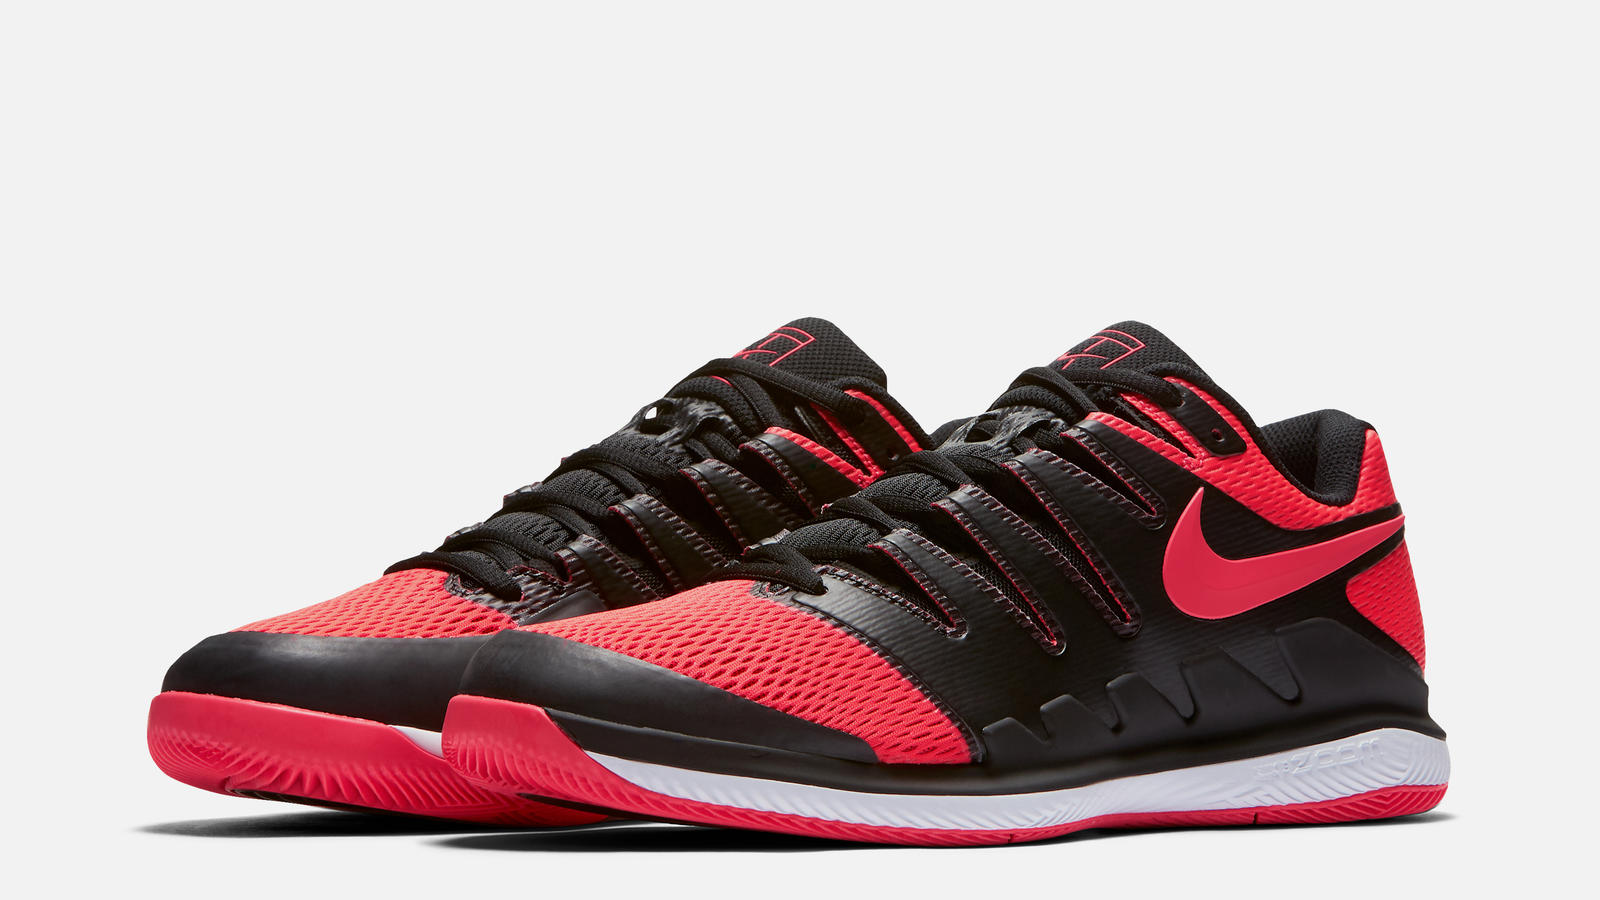 Introducing the NikeCourt Vapor X